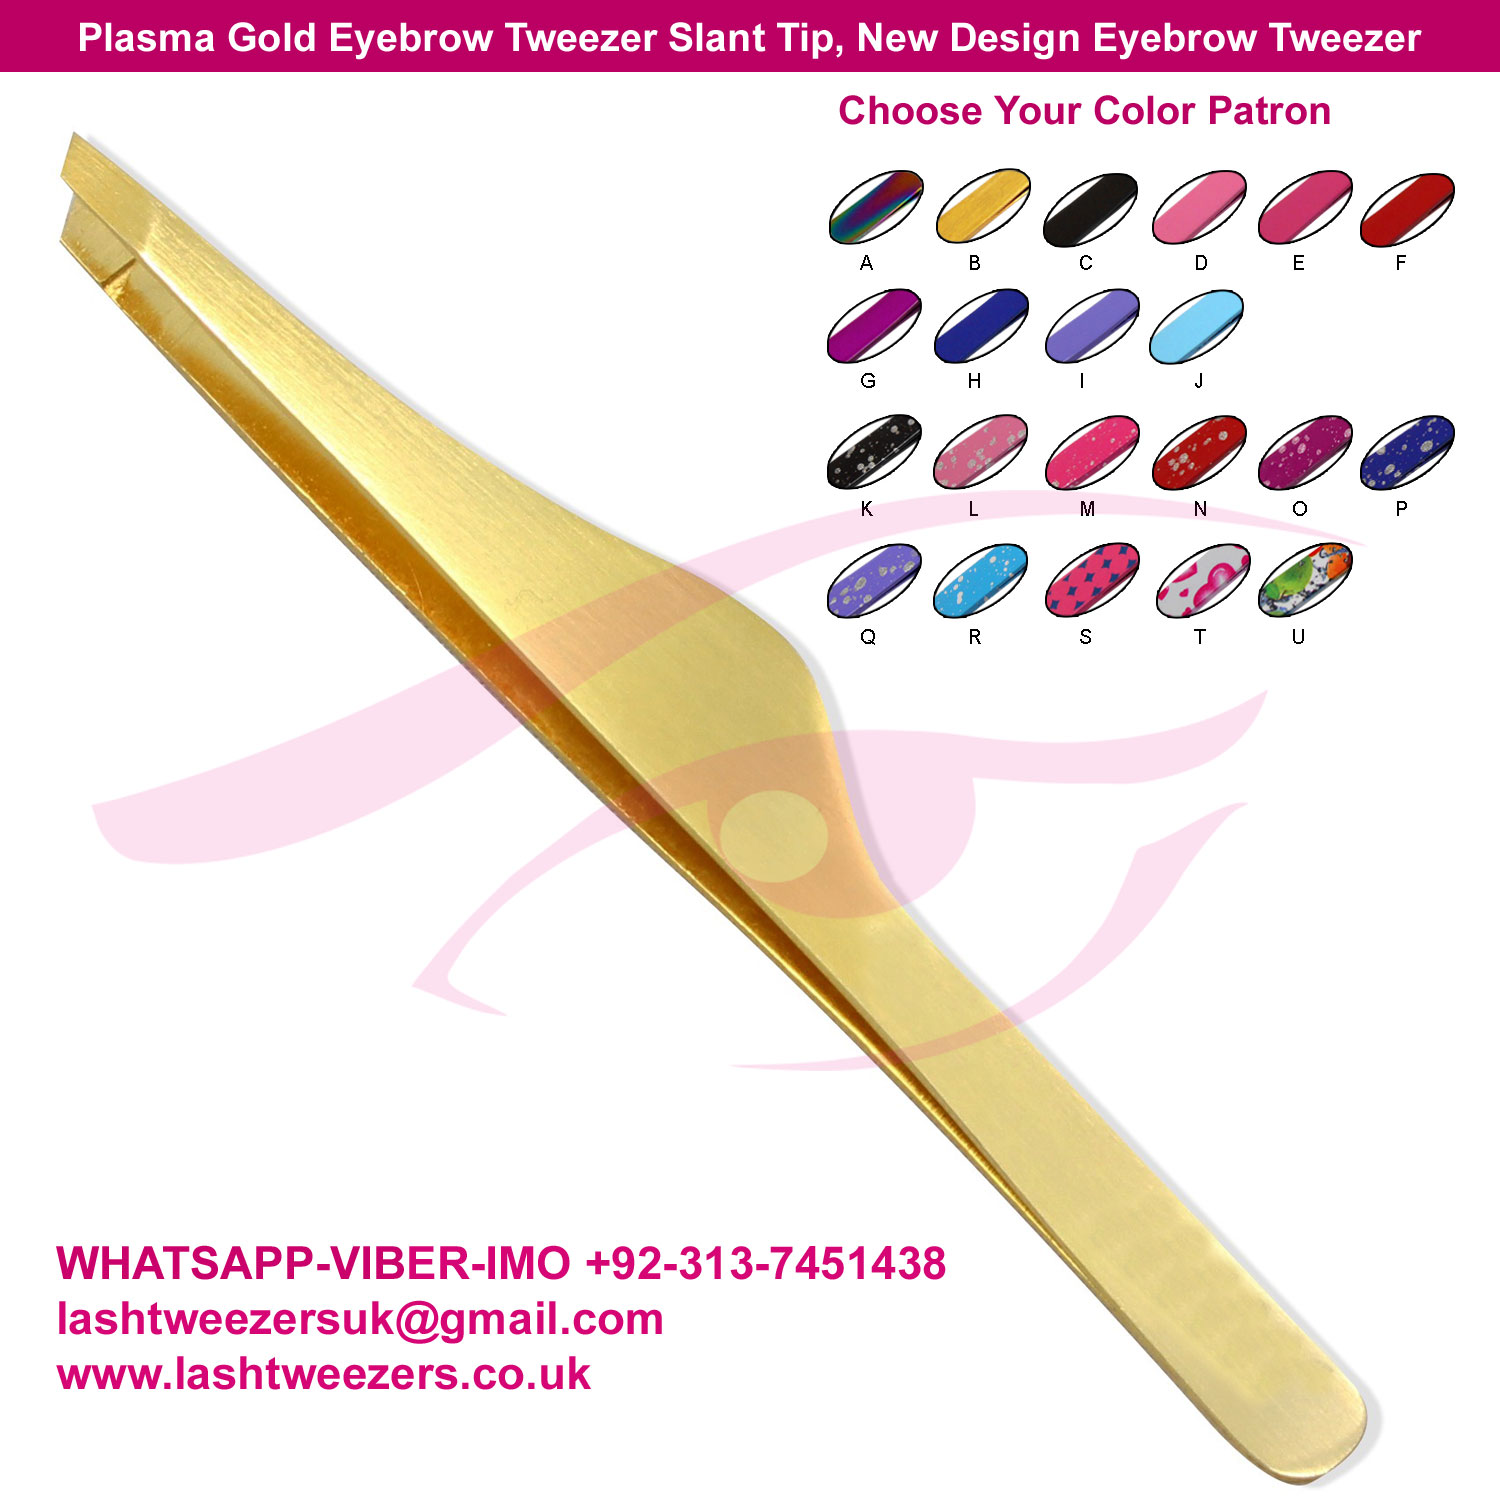 Plasma Gold Eyebrow Tweezer Slant Tip, New Design Eyebrow Tweezer